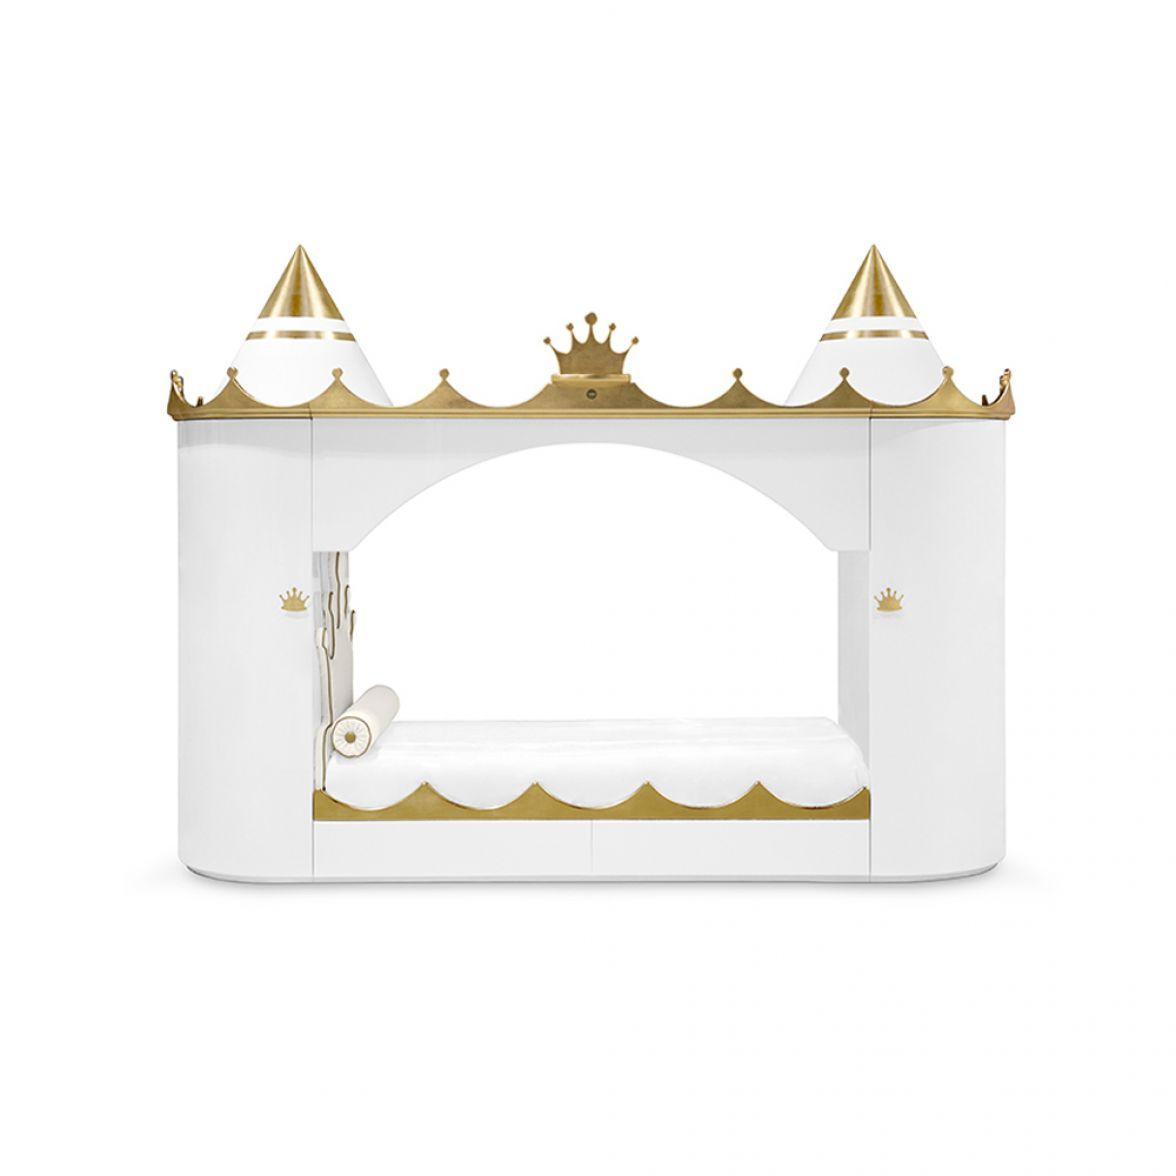 Kings&Queens castle bed